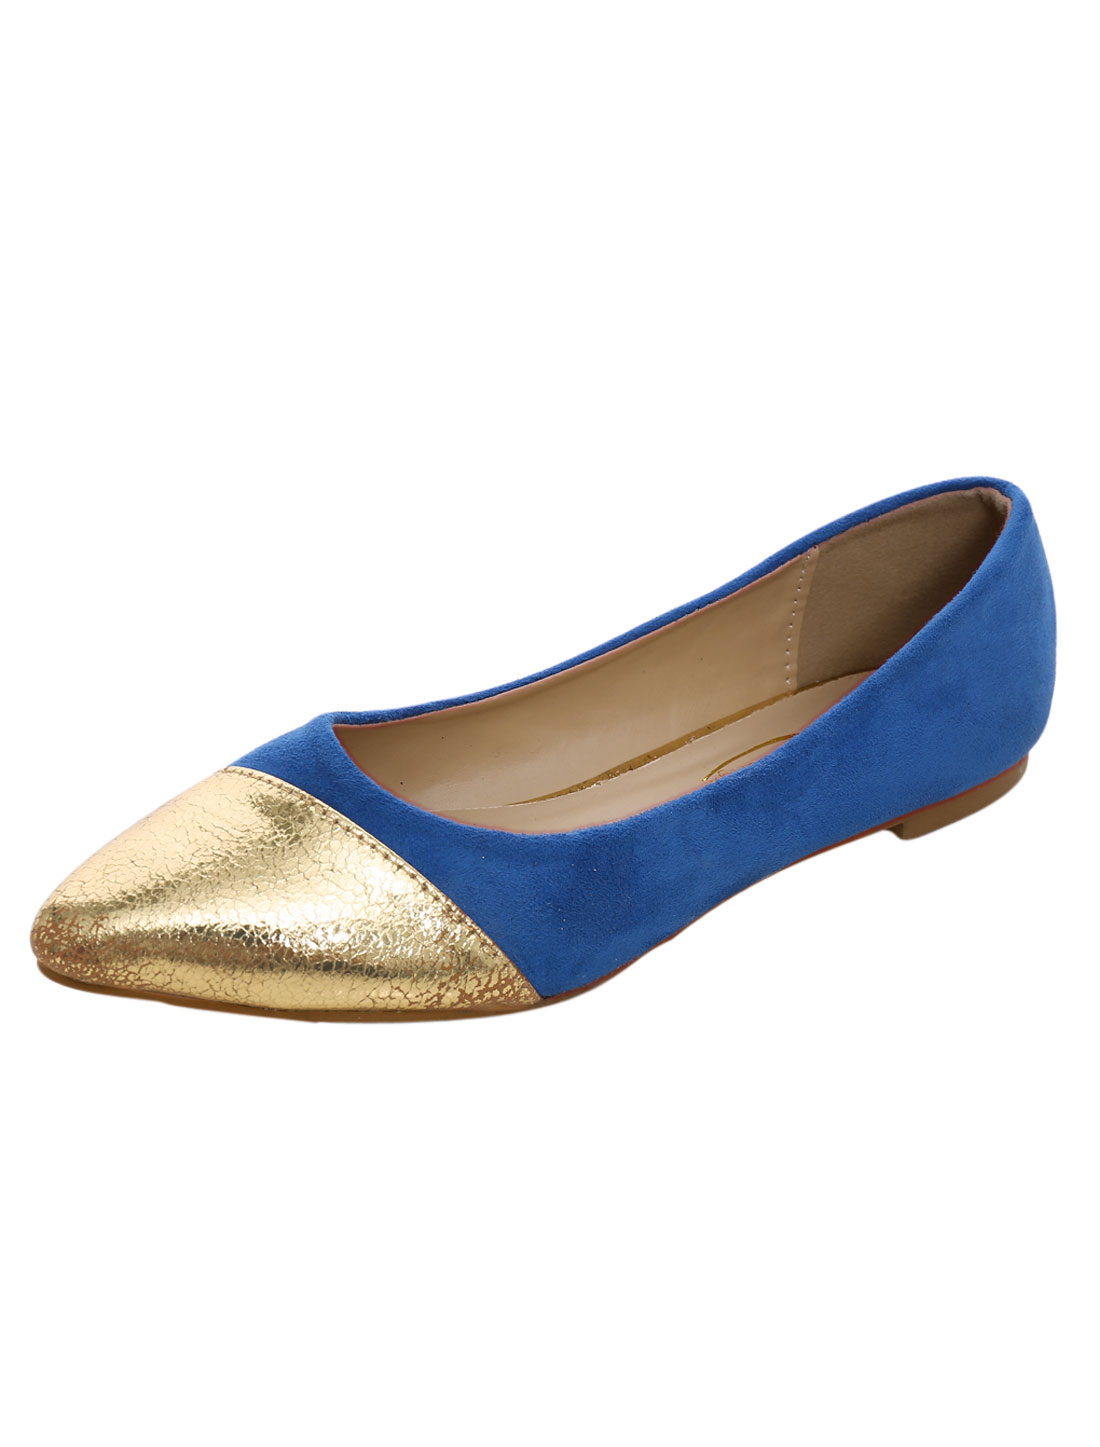 Ladies Color Blocking Panel Pointed Toe Casual Flats Royal Blue US 10.5